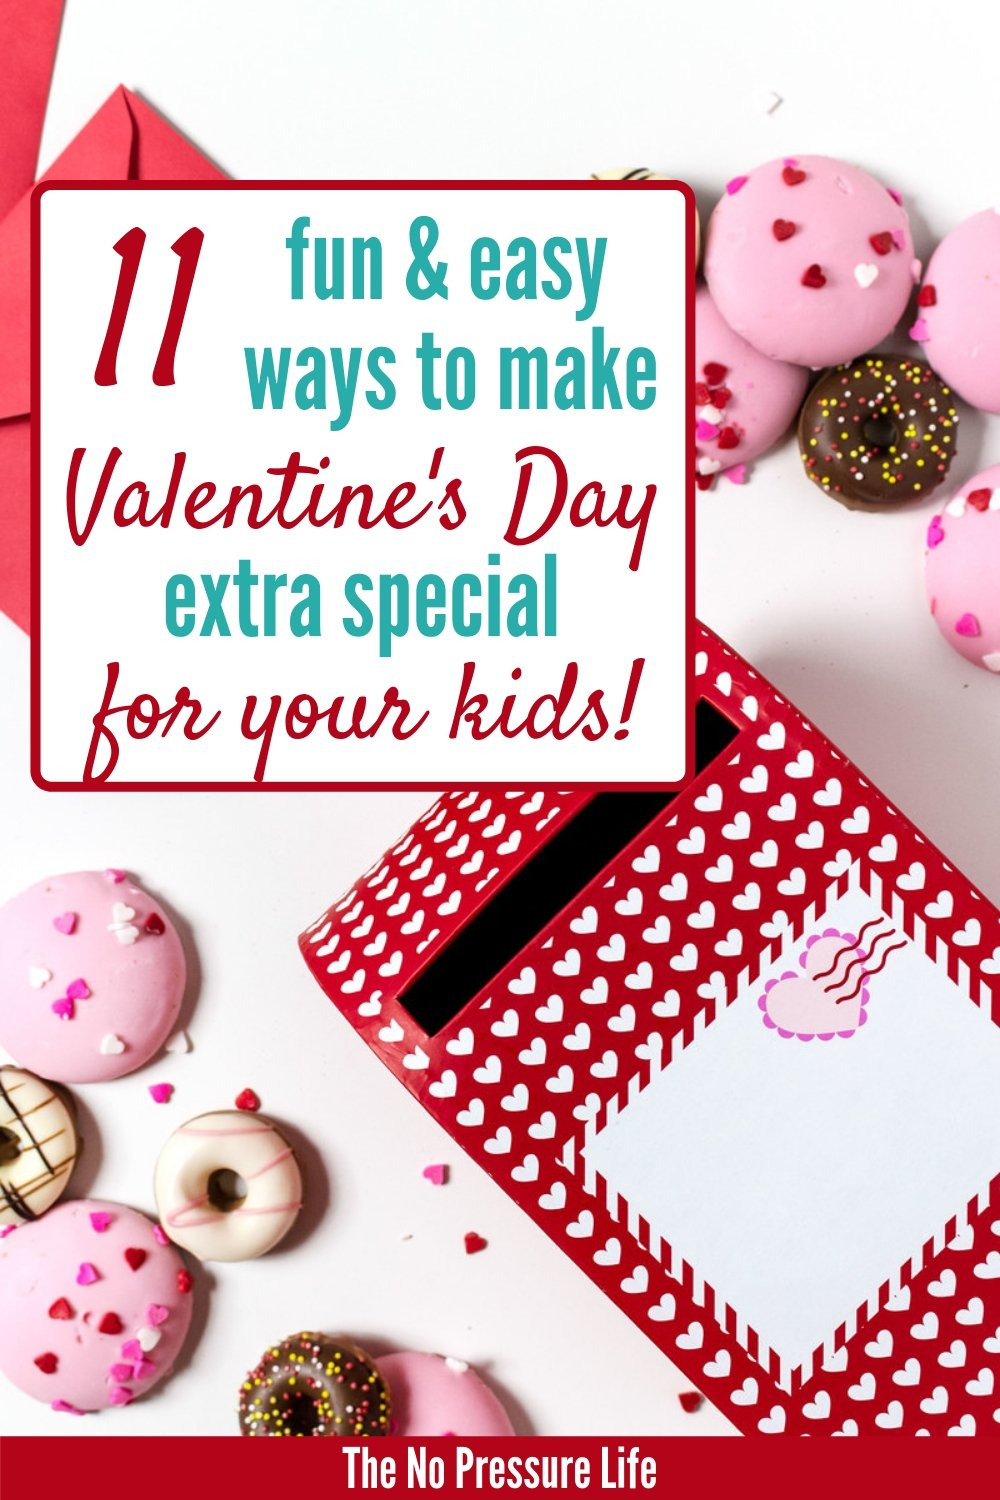 Valentine's Day ideas for kids - Cute Ways to Make Valentine's Day Special for Kids